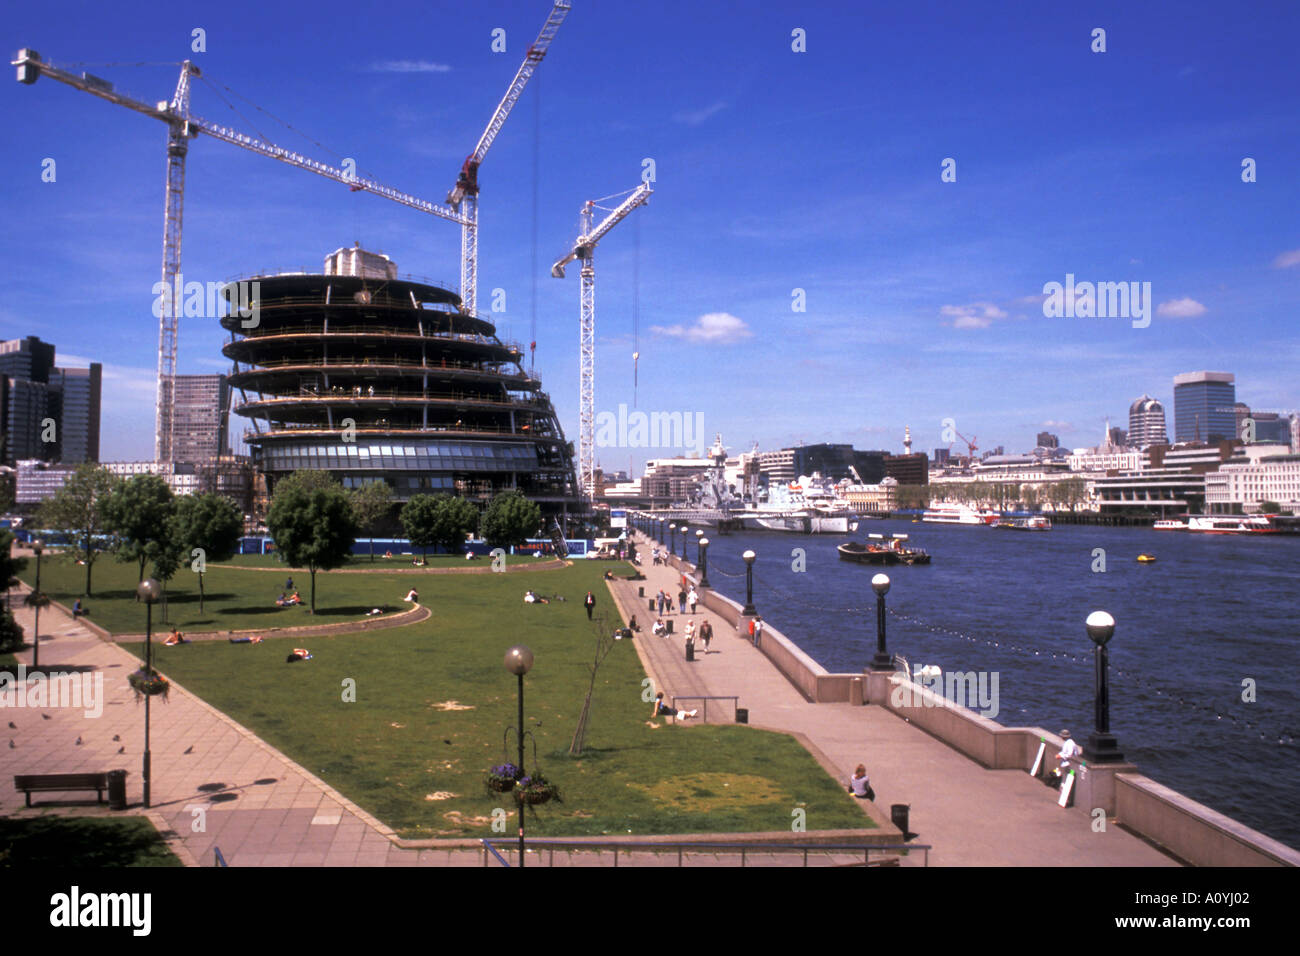 The GLC building on the South bank of the Thames, London. - Stock Image